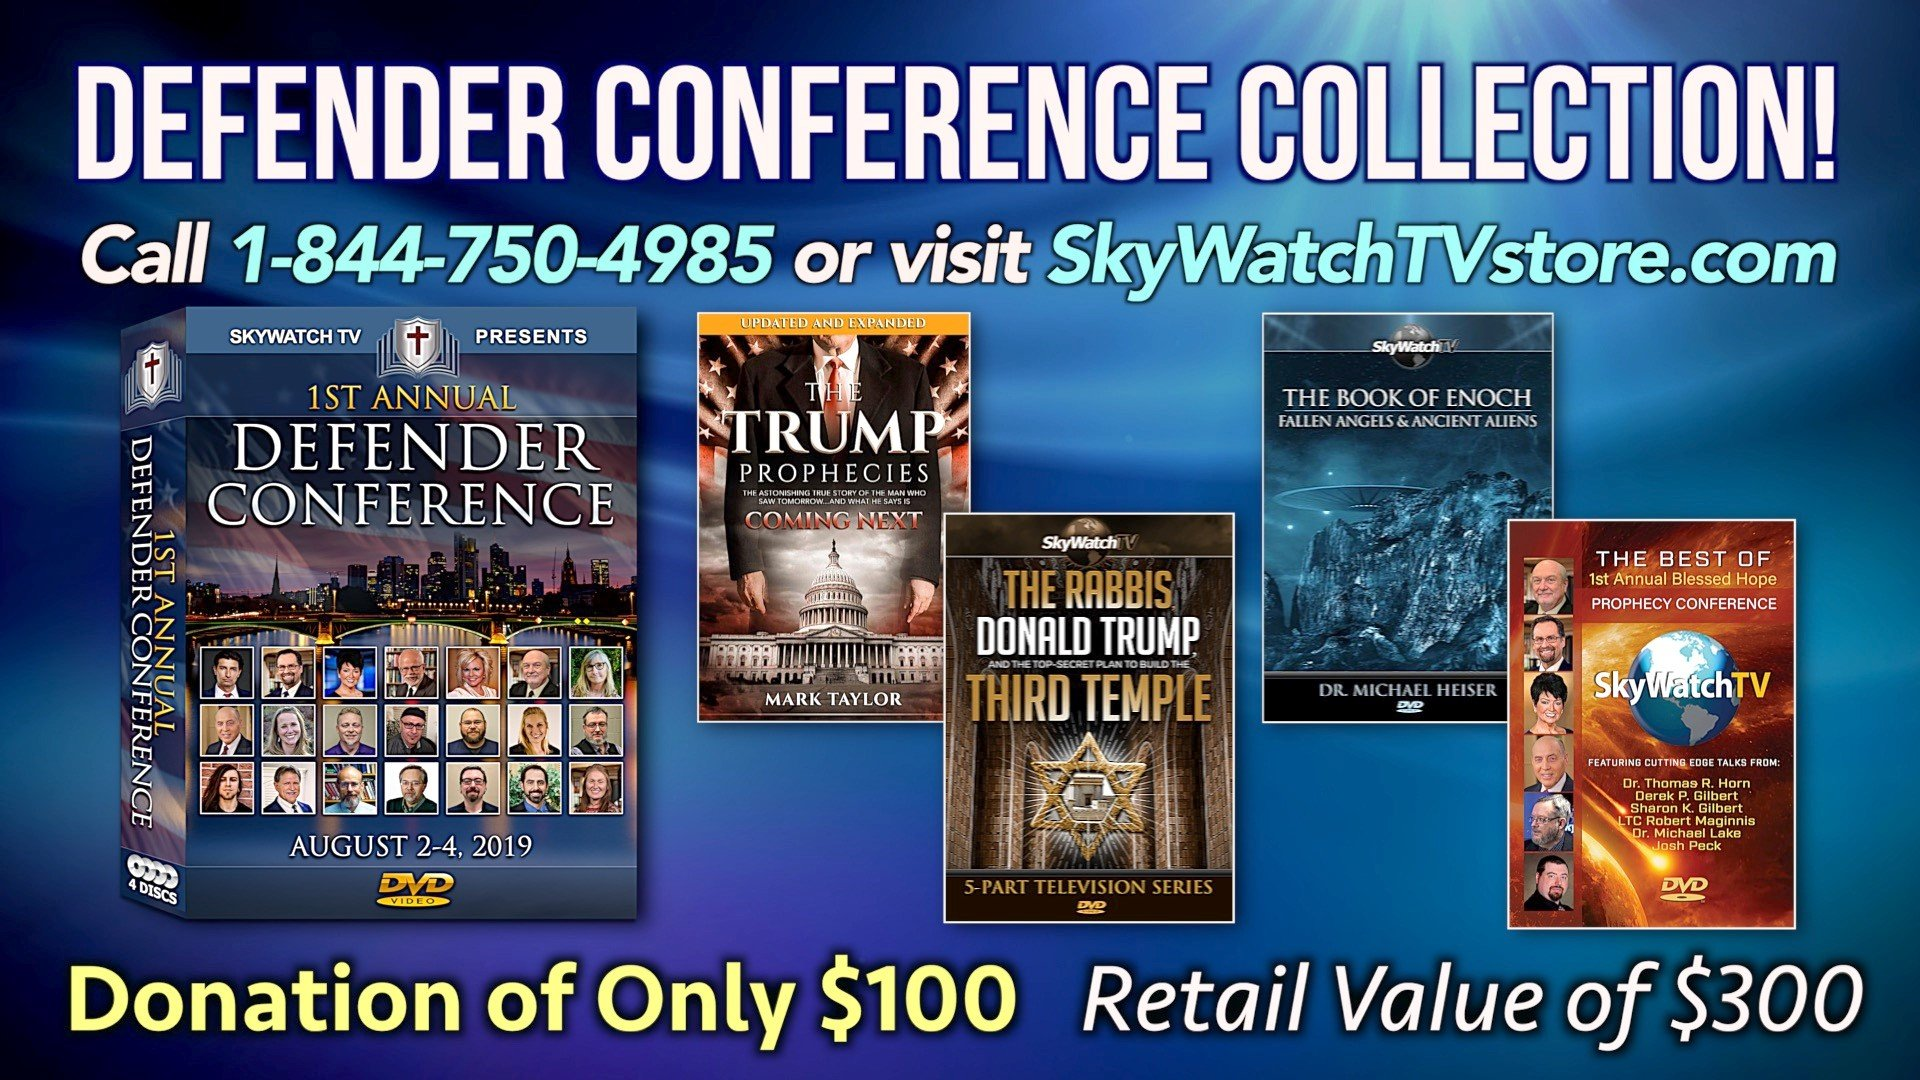 FREE BOOKS & DVDS ($200.00 VALUE) WITH THE NEW 21-HOUR DEFENDER CONFERENCE COLLECTION!